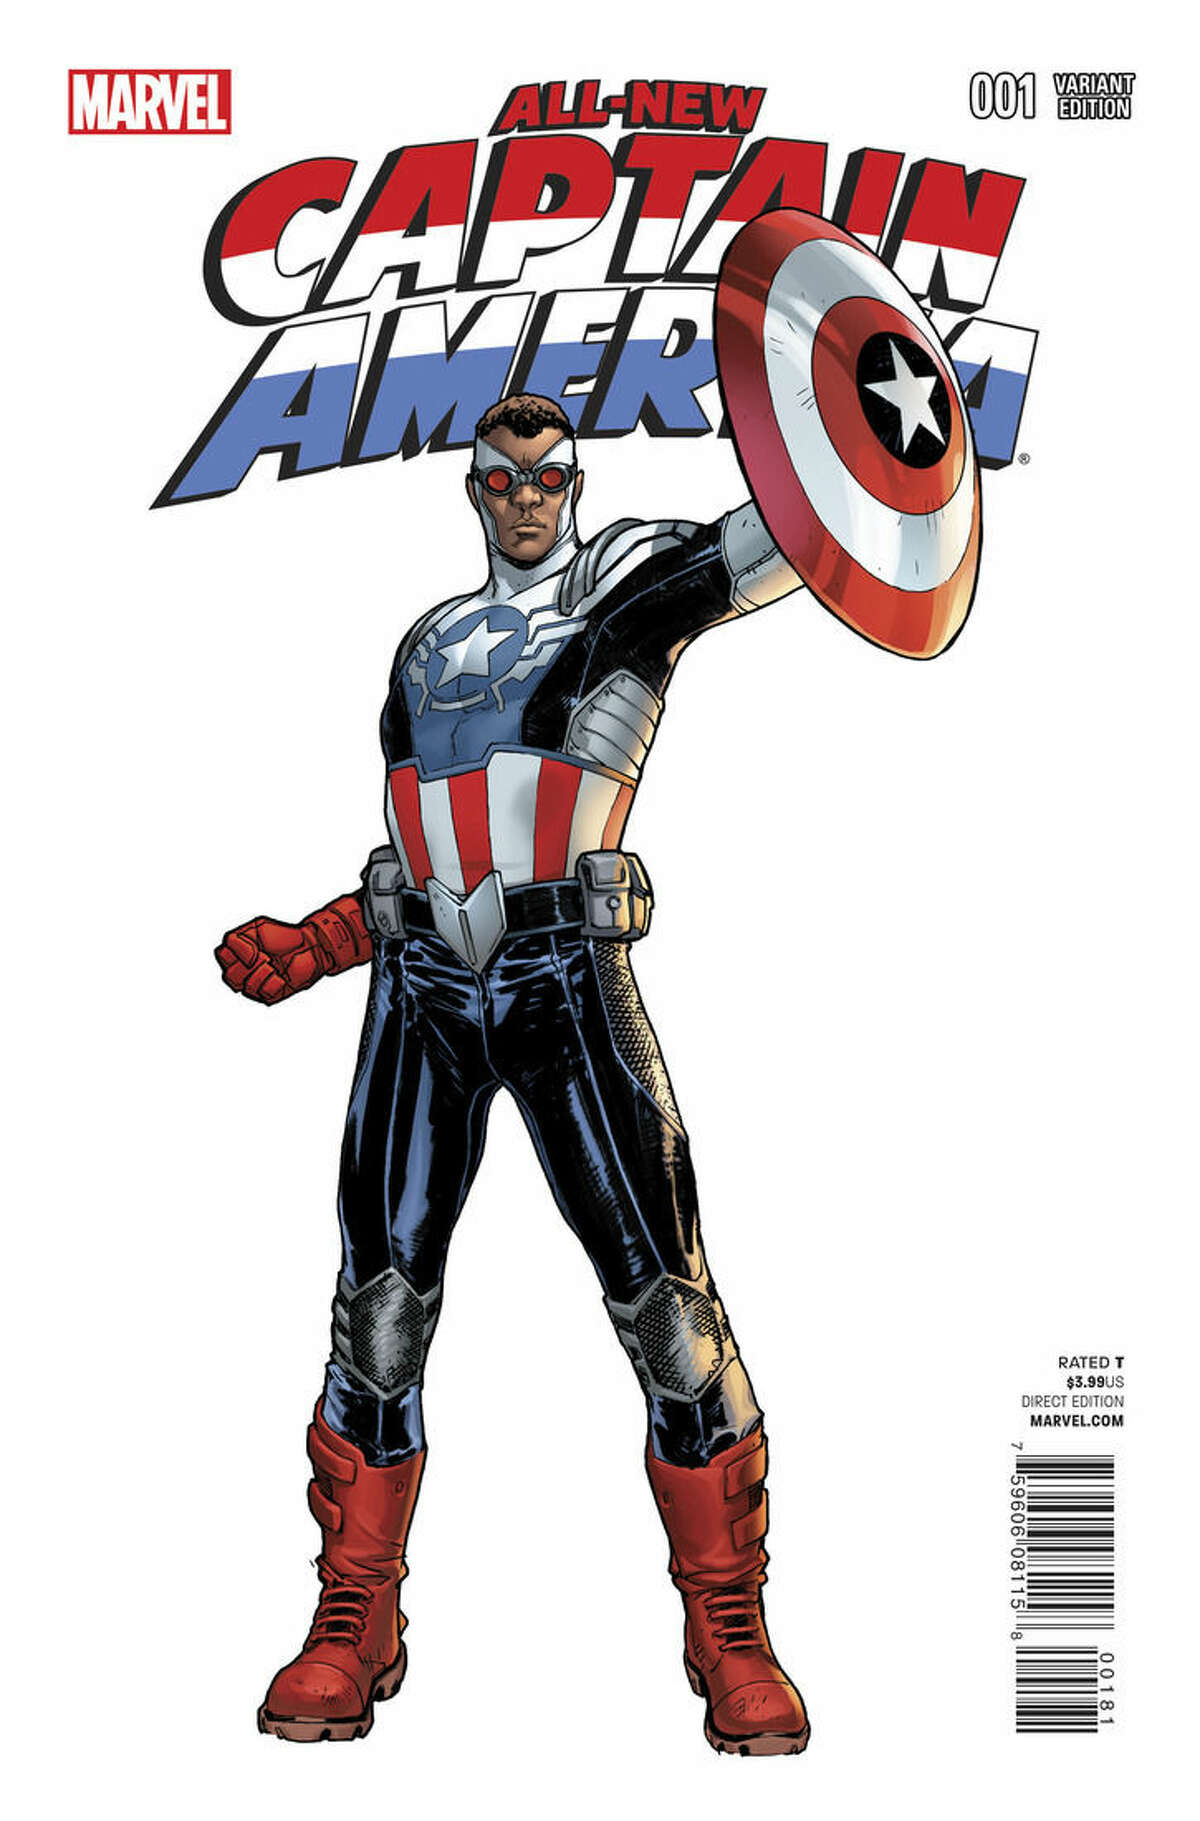 This comic book cover image released by Marvel shows the